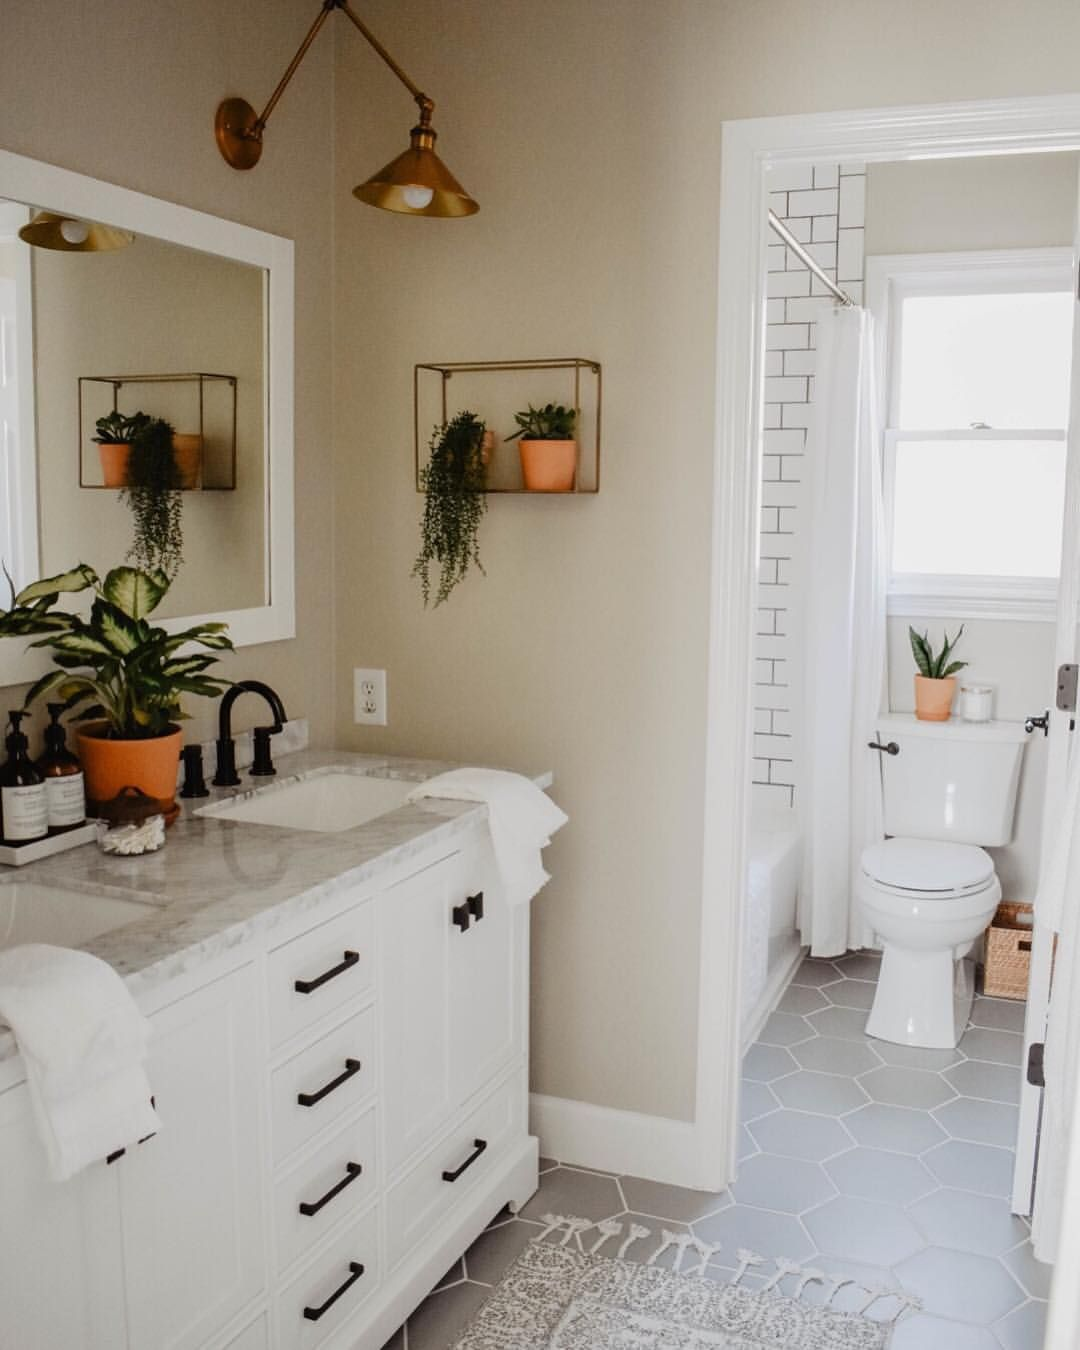 Kitchen Wall Color? Looks Nice With White Cabinets And